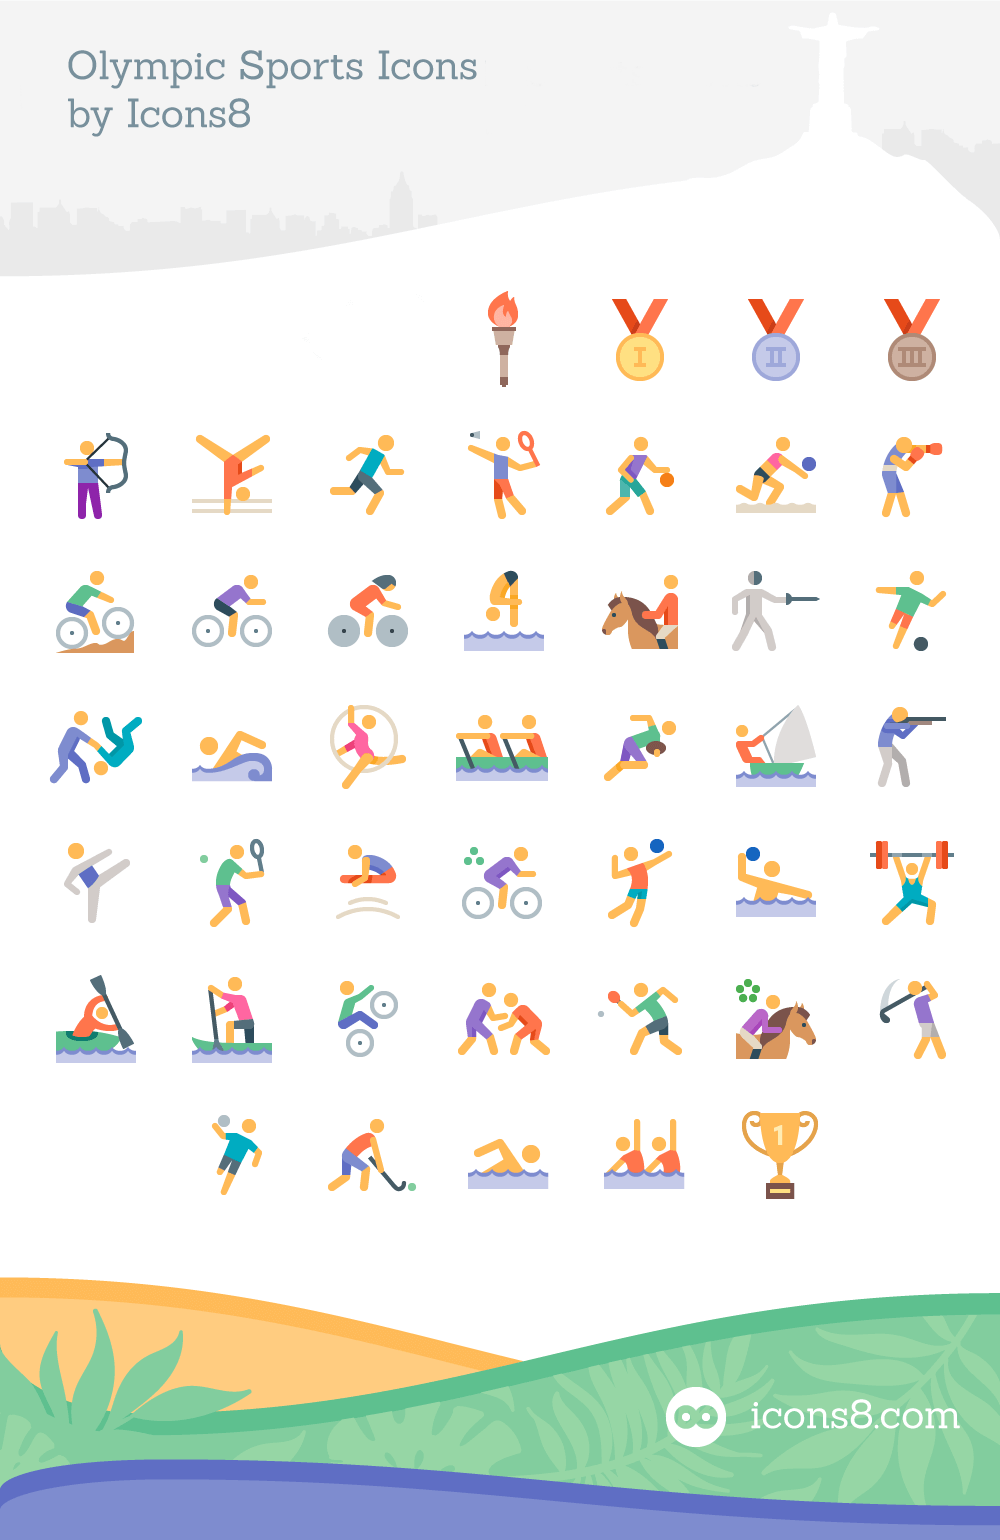 Freebie olympics sports icon set 45 icons eps pdf png svg full preview of the icon set buycottarizona